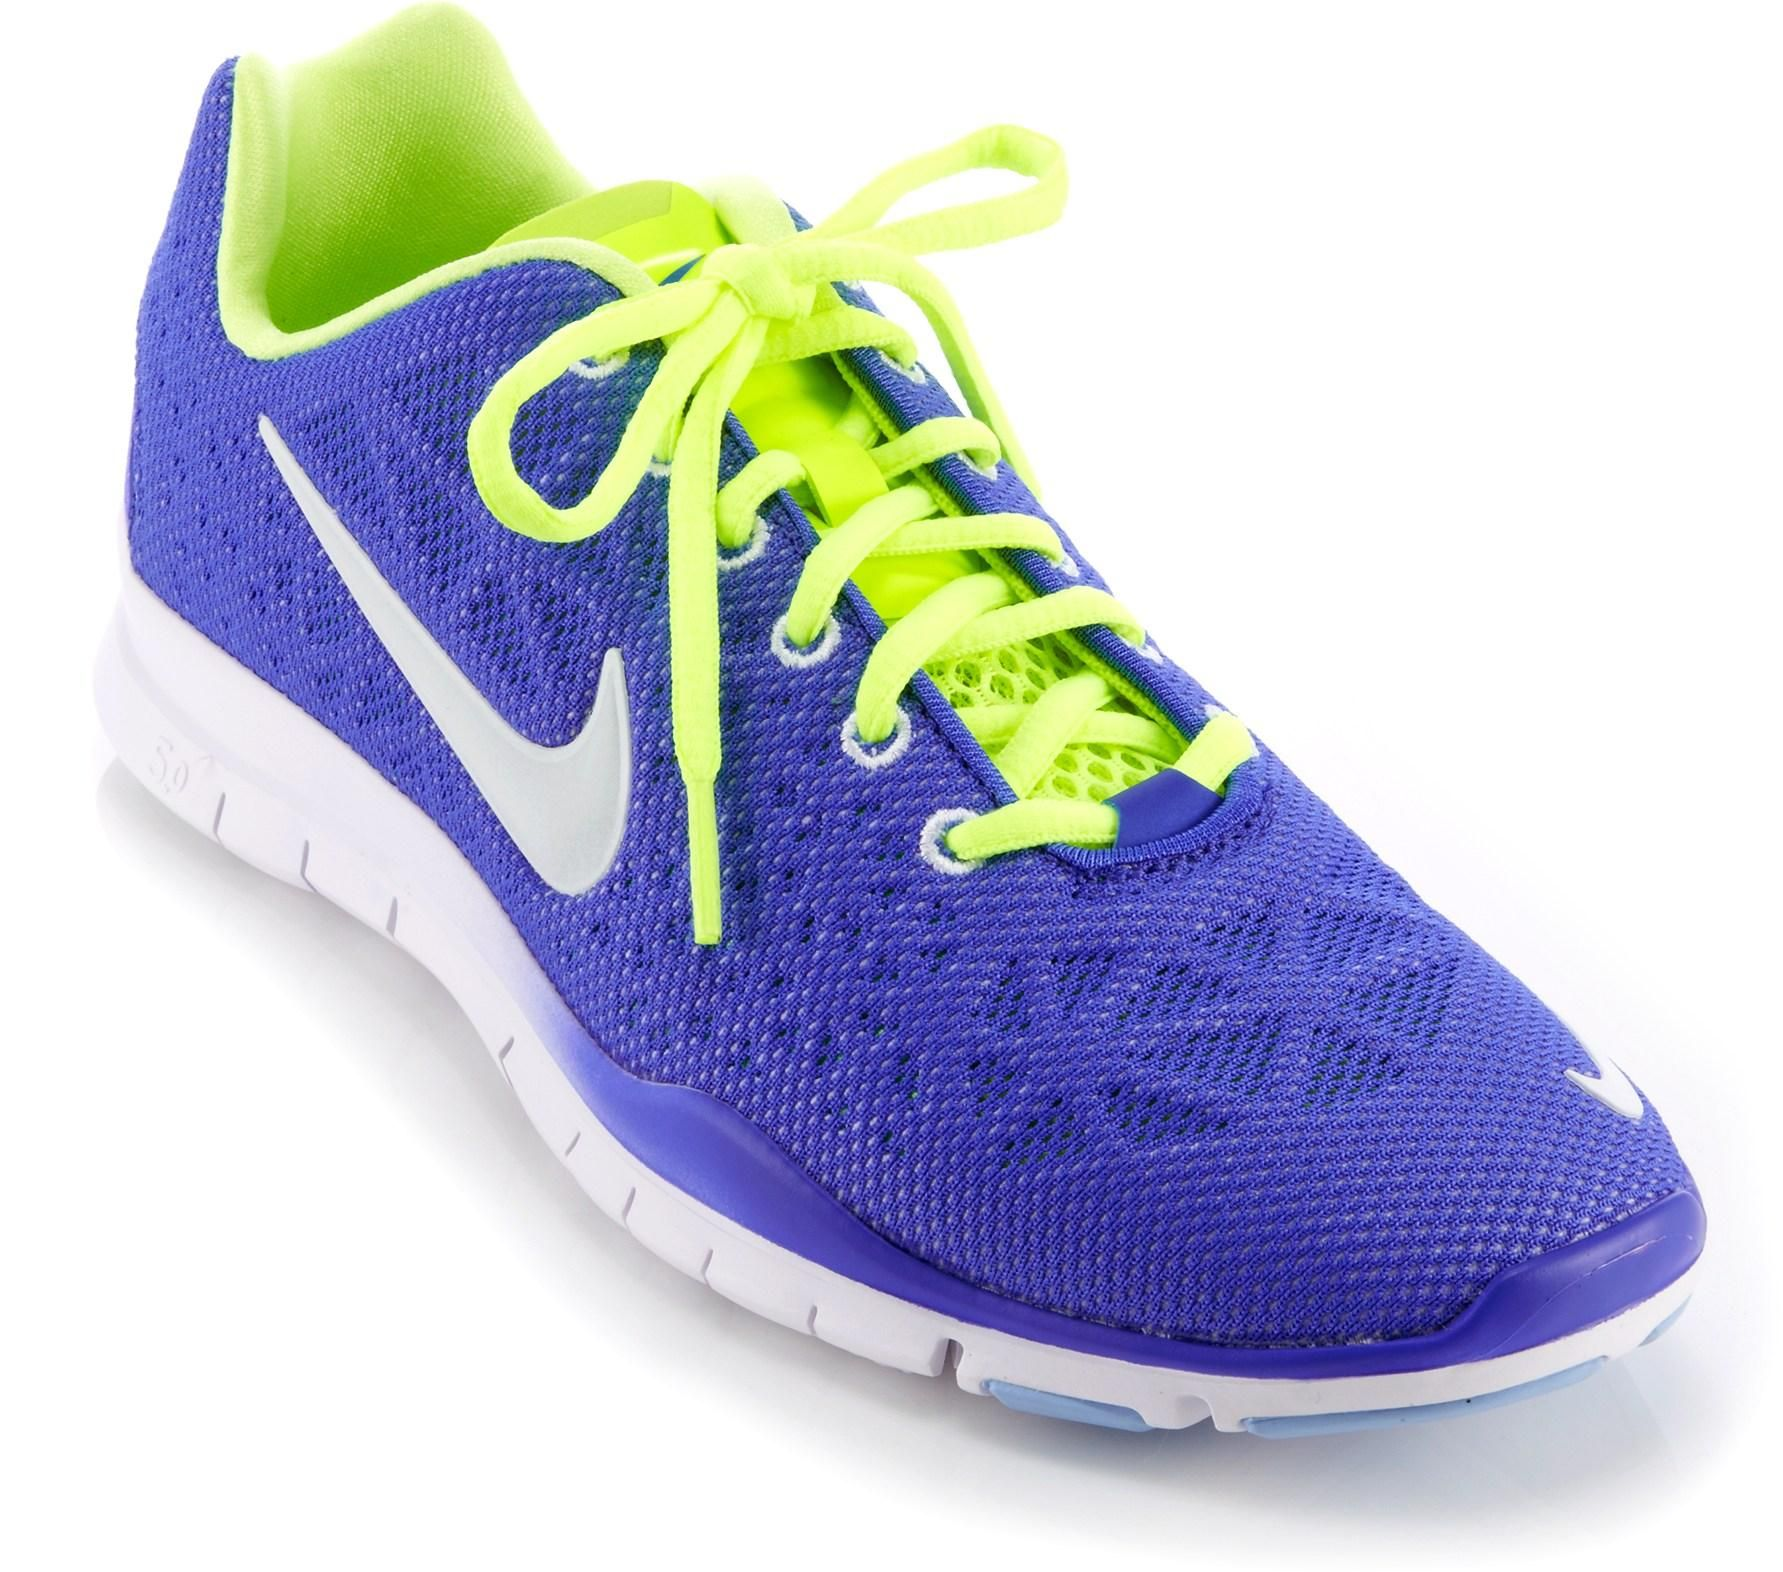 Nike Free TR Fit 3 Breathe Training Shoes - Women s.  24182271a8